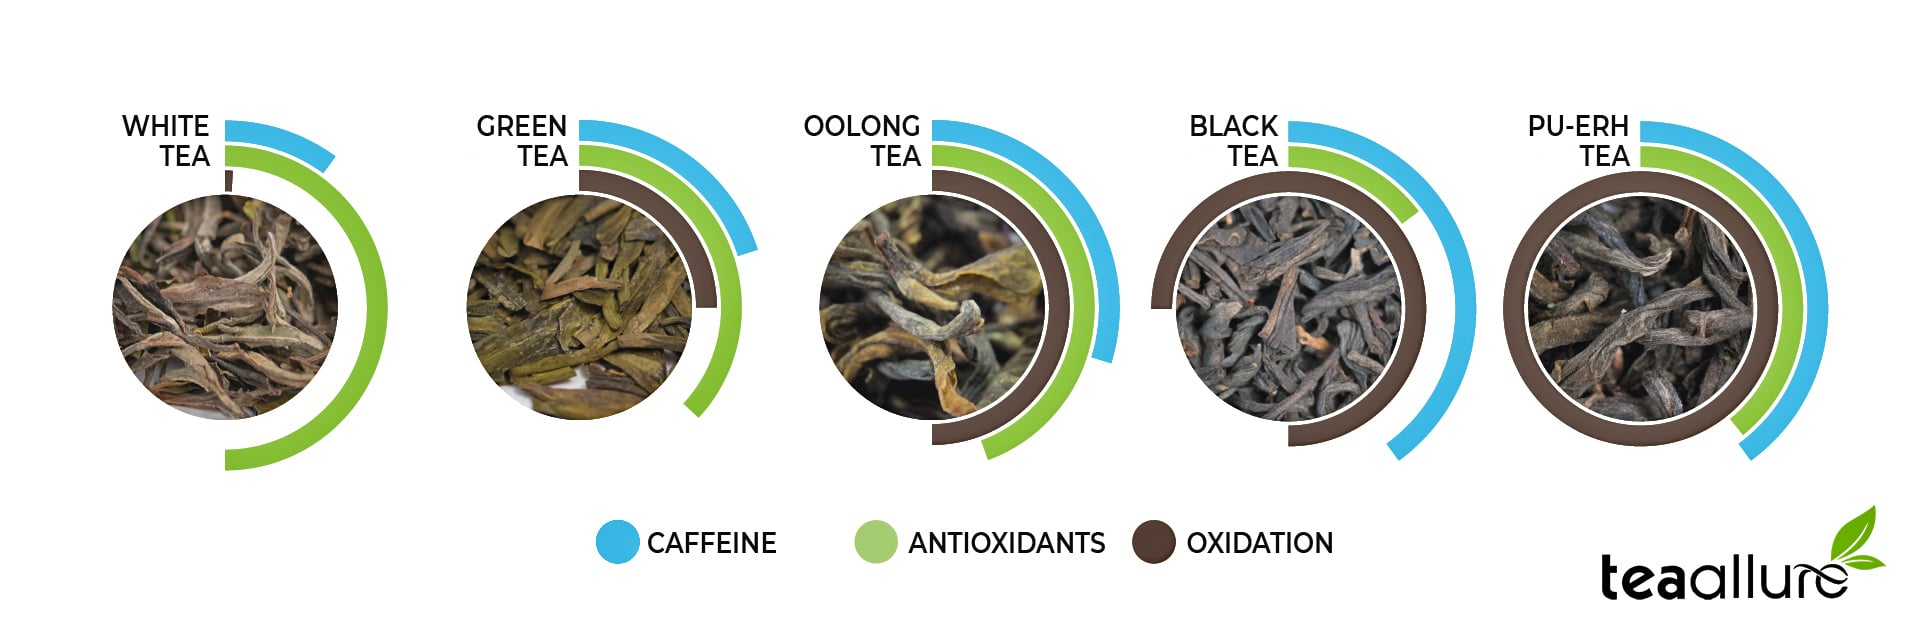 Caffeine lever, oxidation and anti-oxidants in different tea varieties